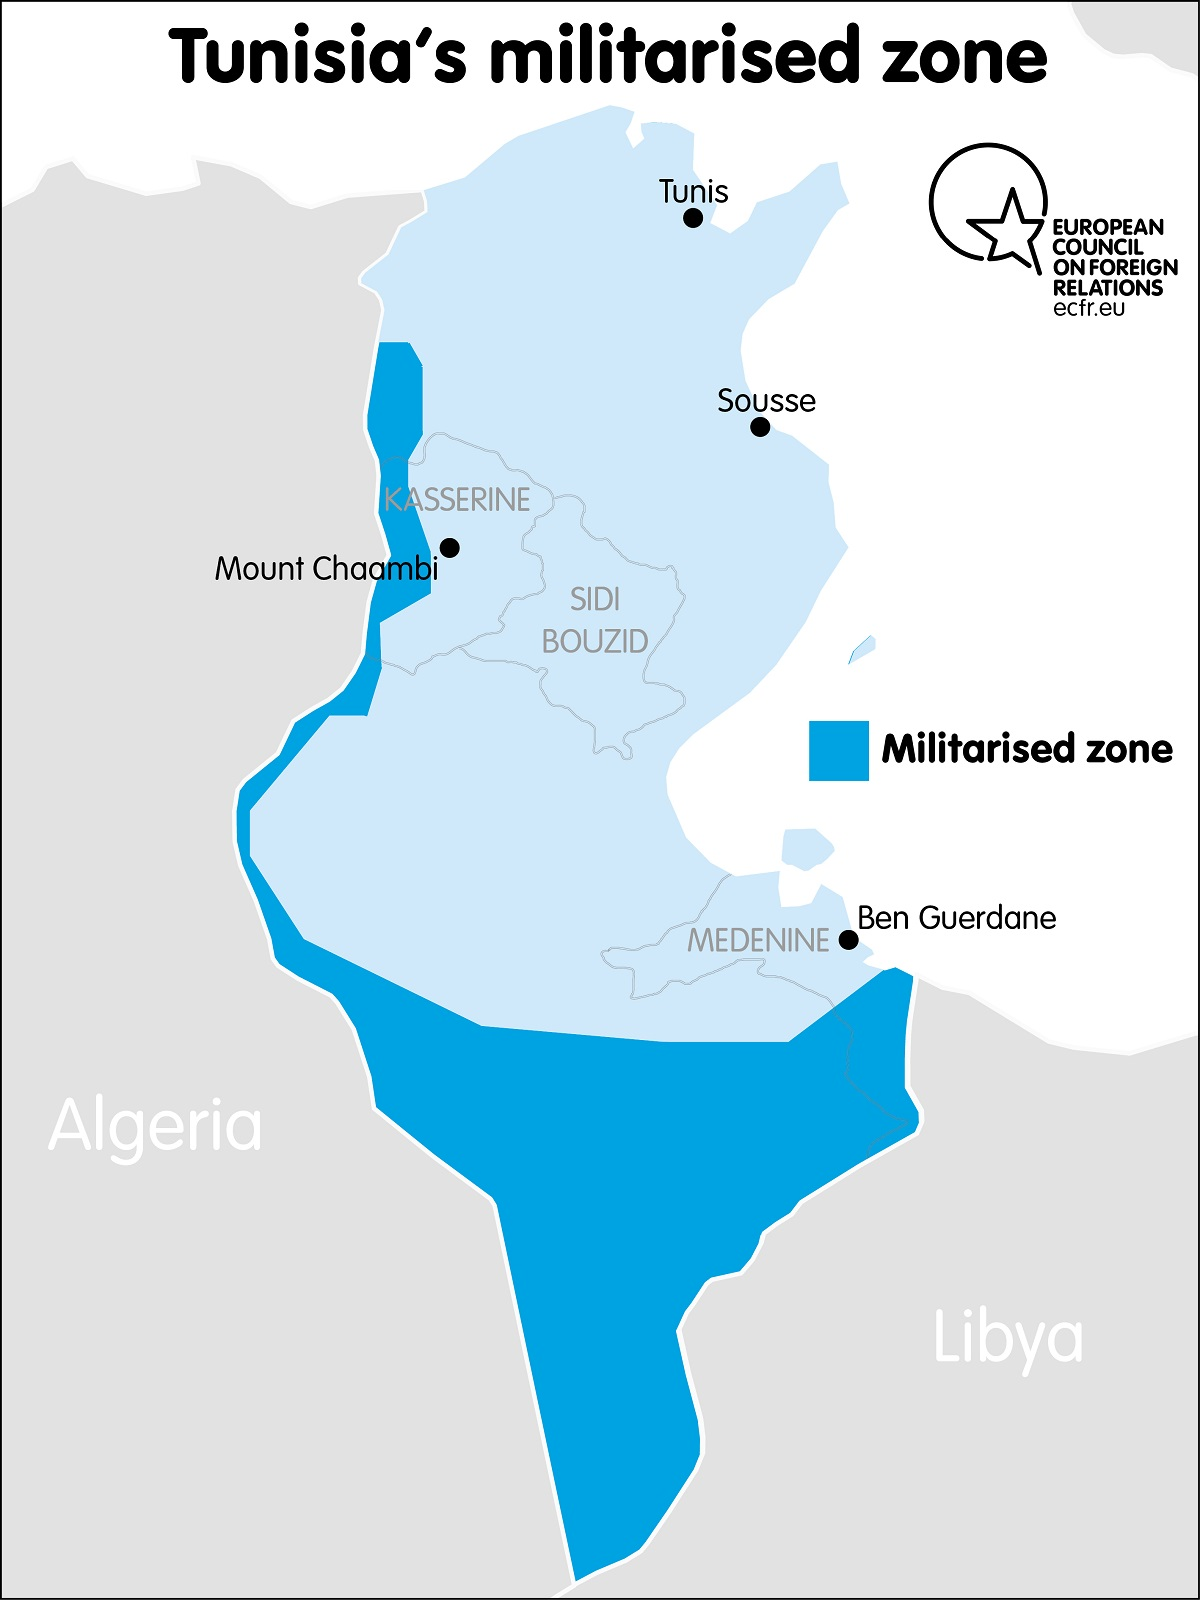 Tunisia's militarised zones